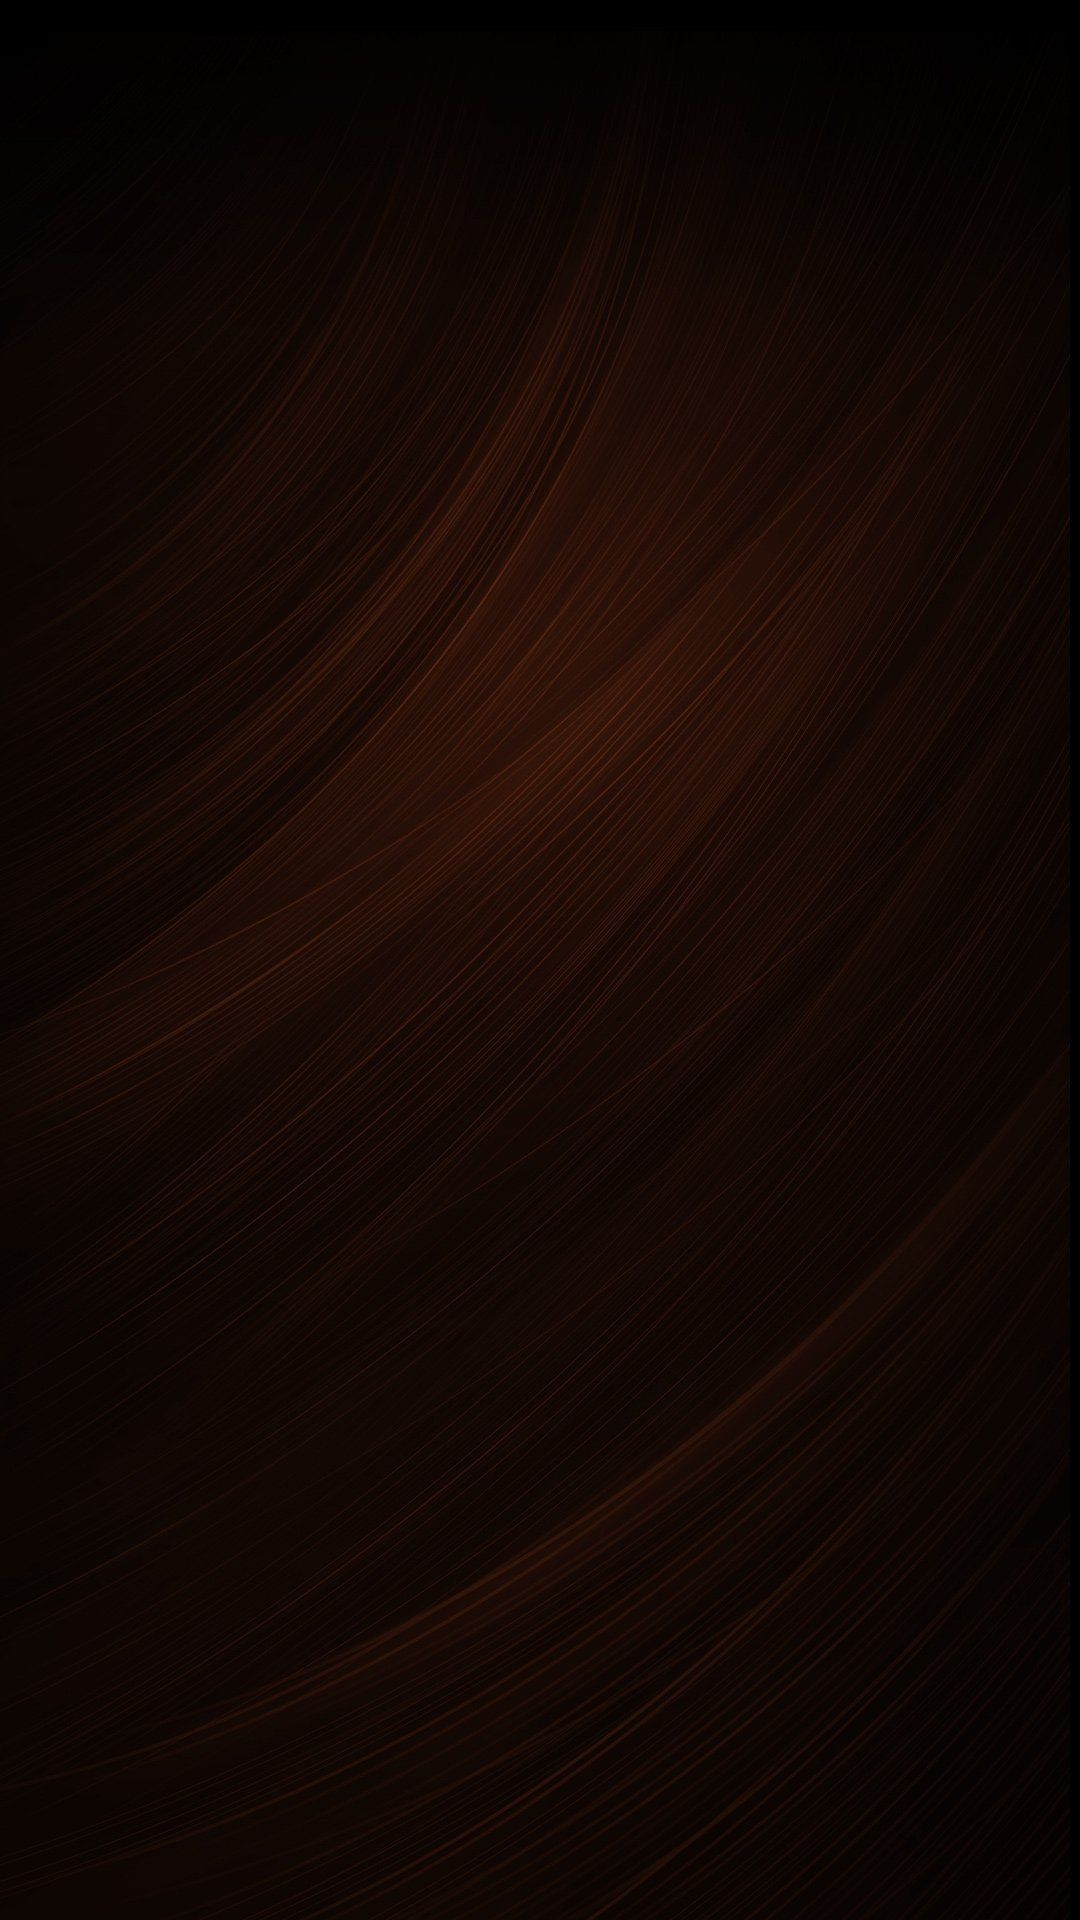 Brown Iphone Wallpapers Top Free Brown Iphone Backgrounds